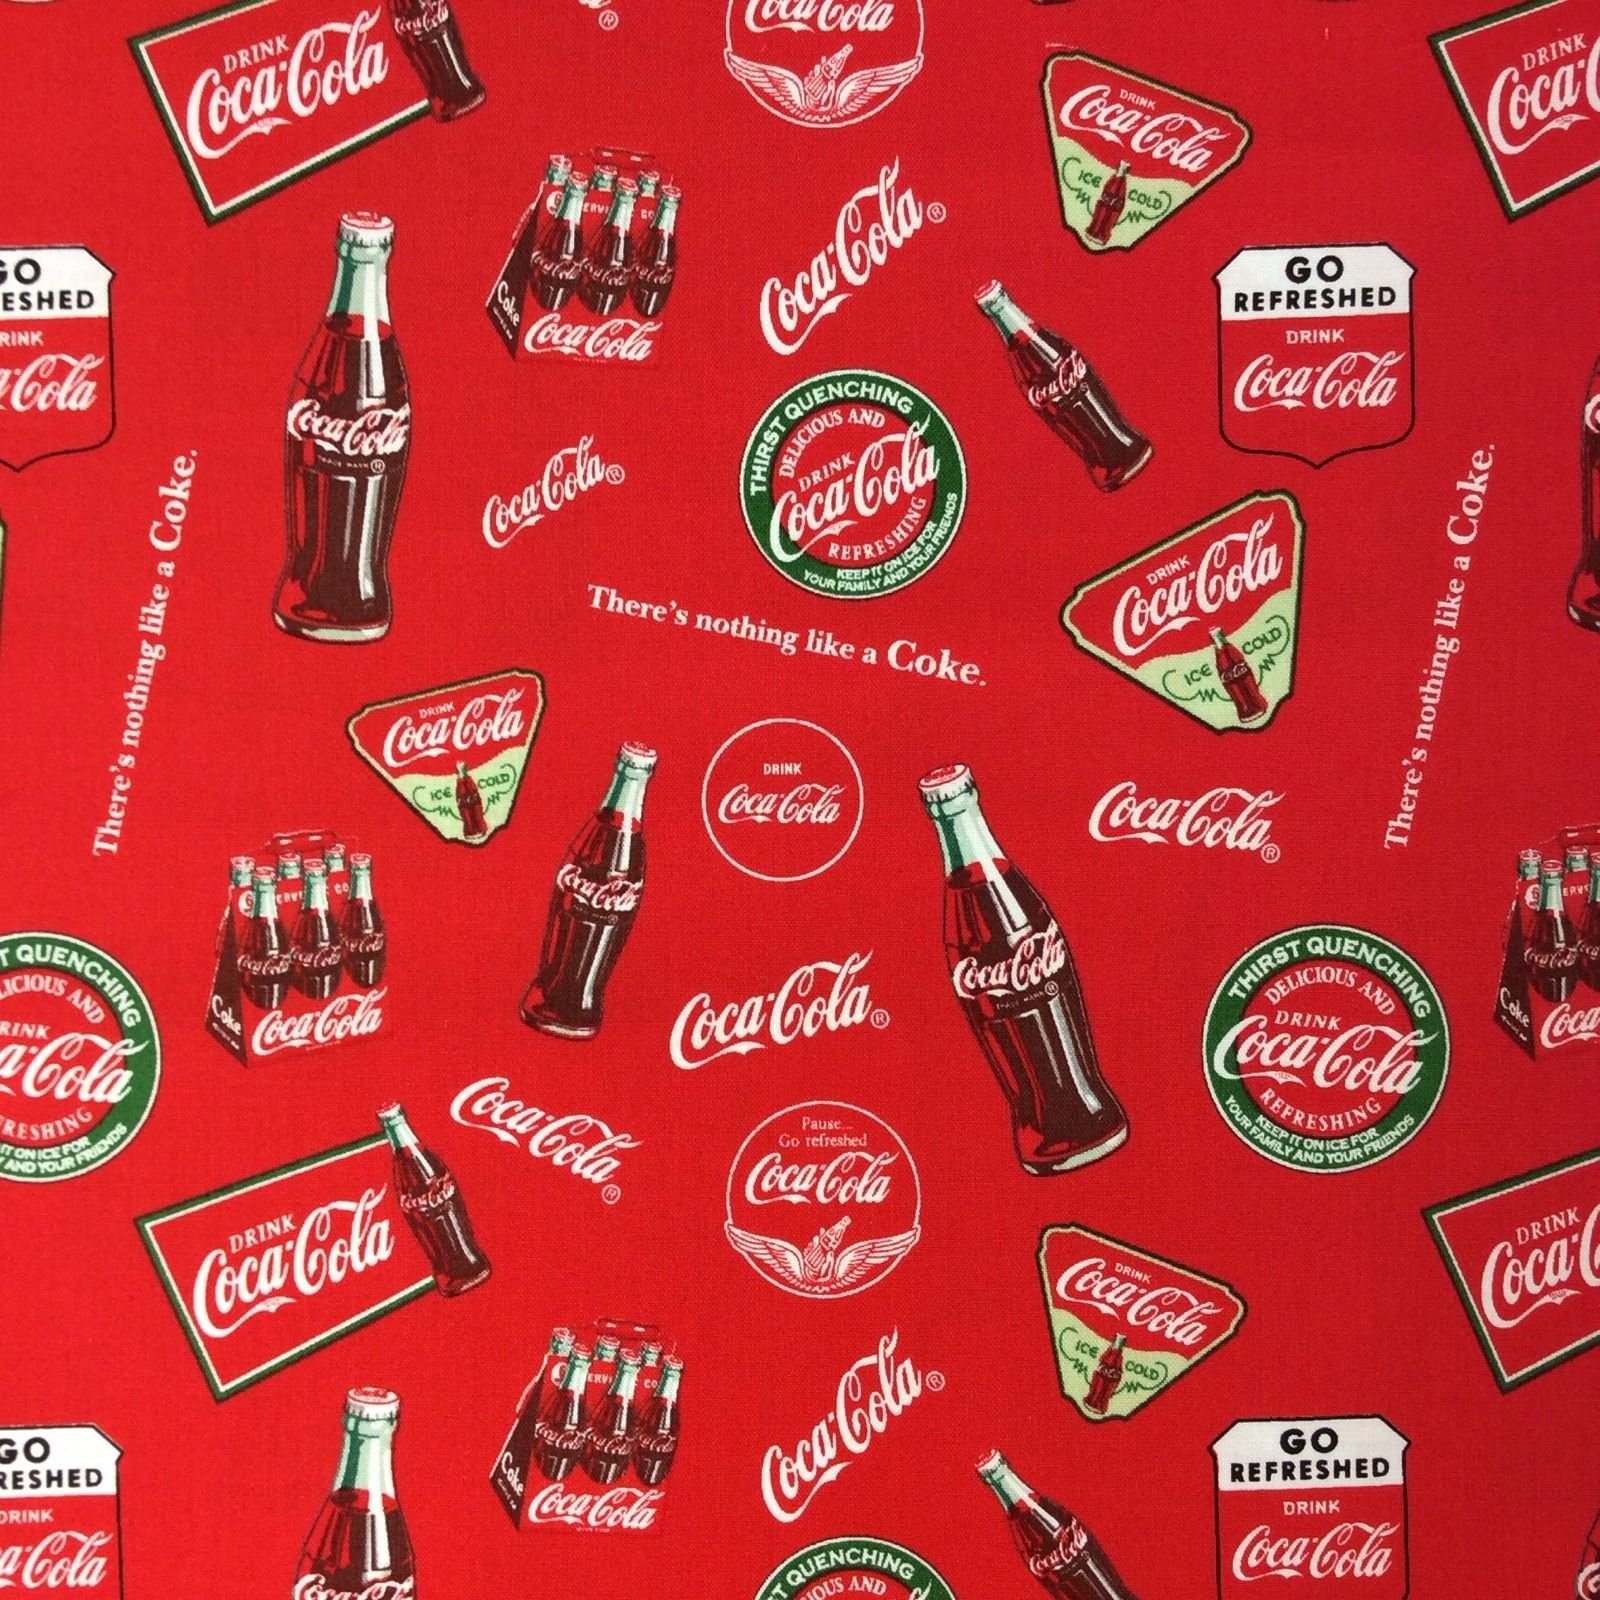 Coca-cola Coke Products Soda Pop Beverage Quilt Cotton Quilting Fabric FT29